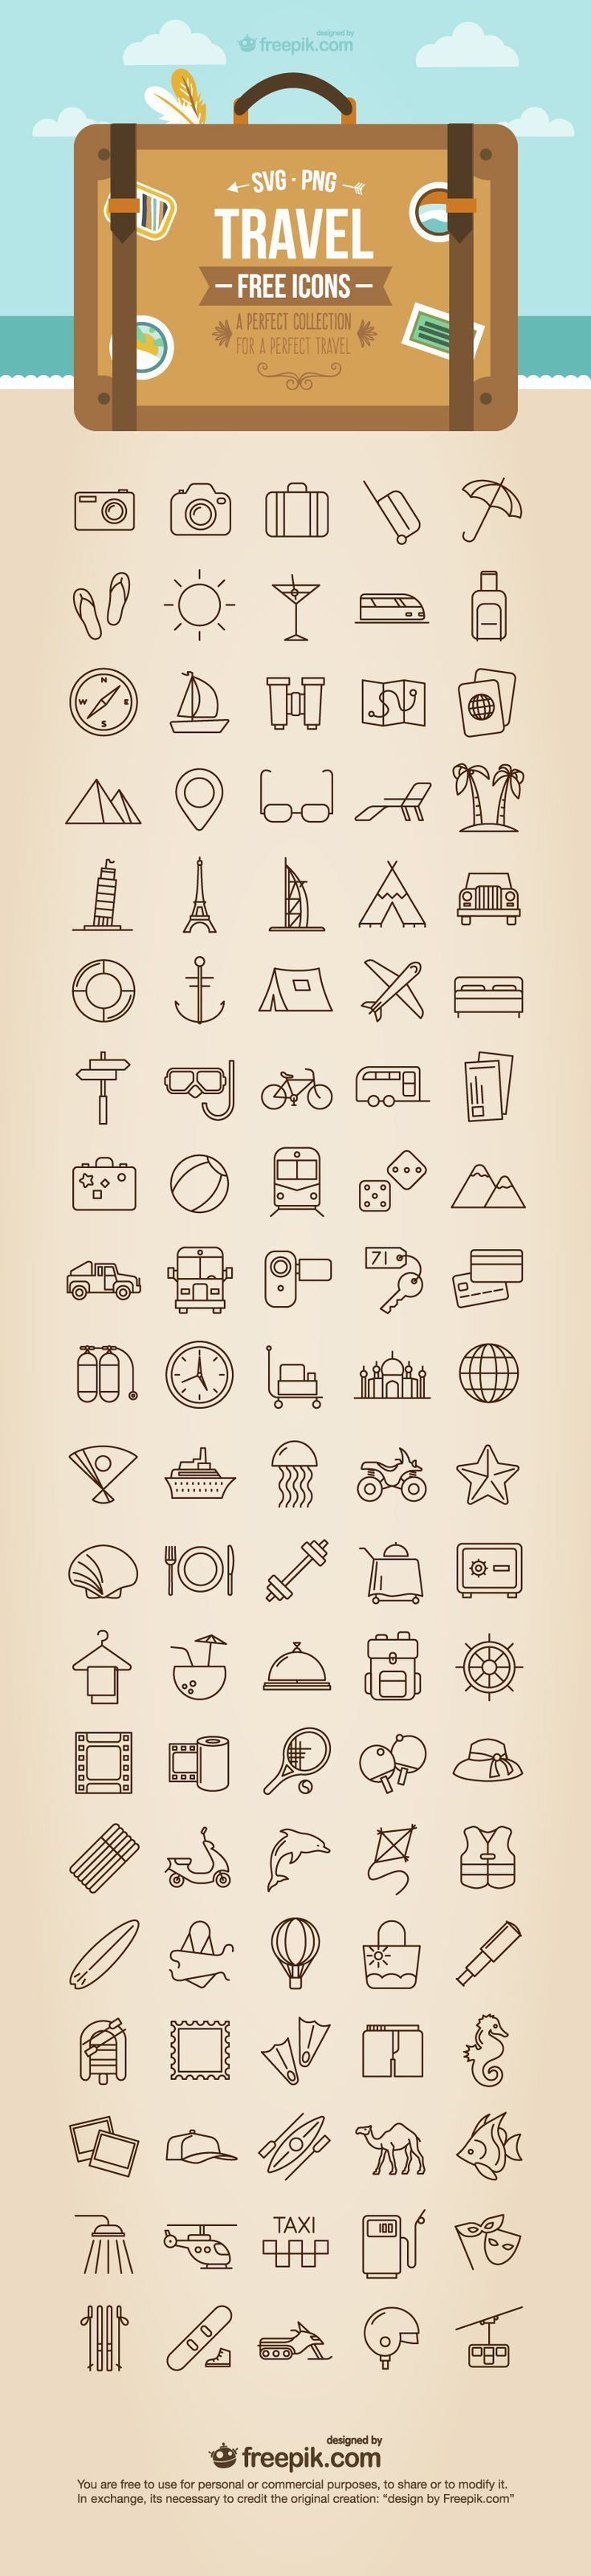 Free Travel Icons - SVG + PNG formats